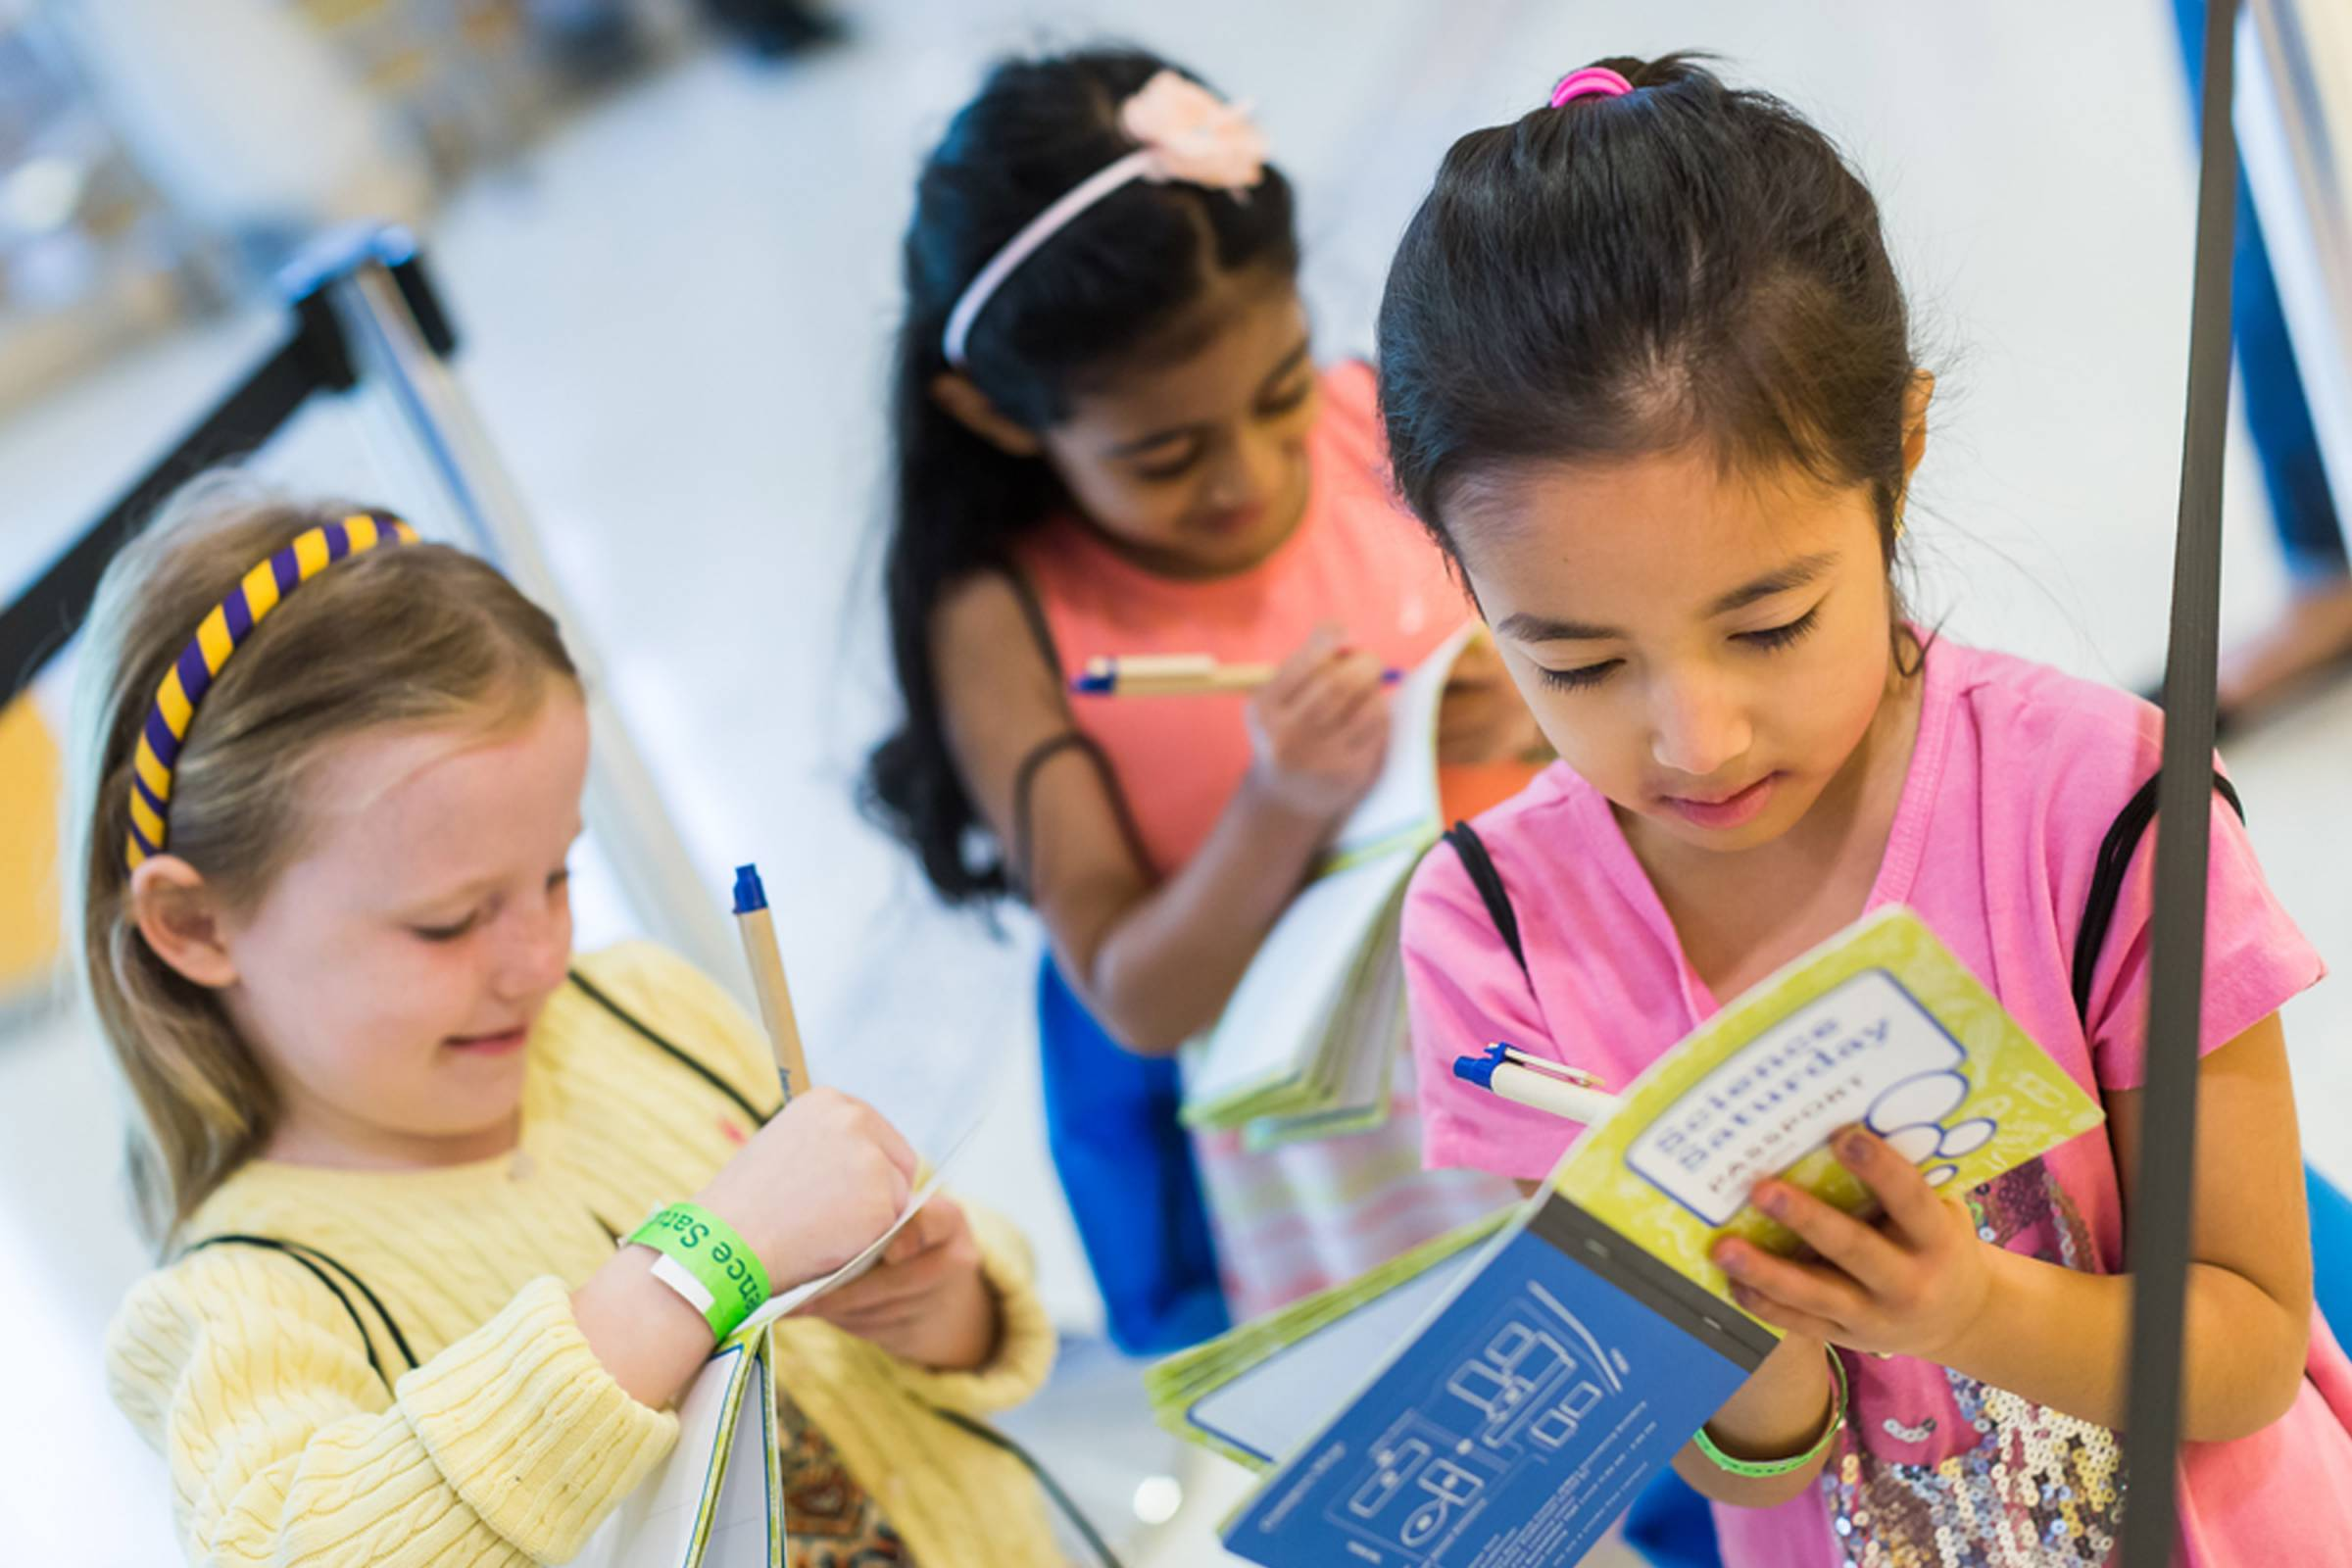 Students used Science Saturday passports to record their findings, just as real scientists use lab notebooks.